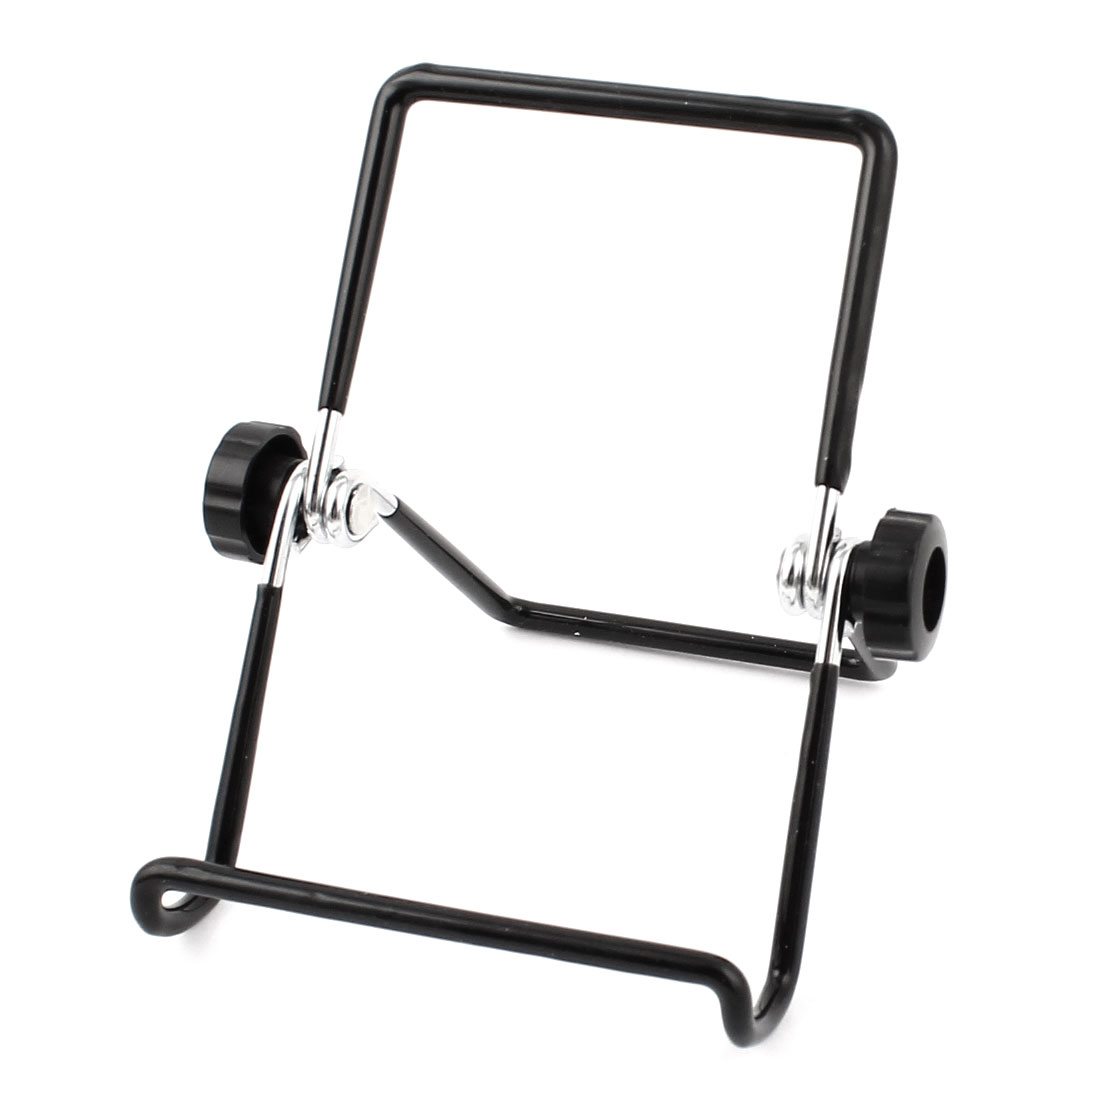 Portable Adjustable Multi-angle Holder Desktop Stand Bracket Black for Tablet PC